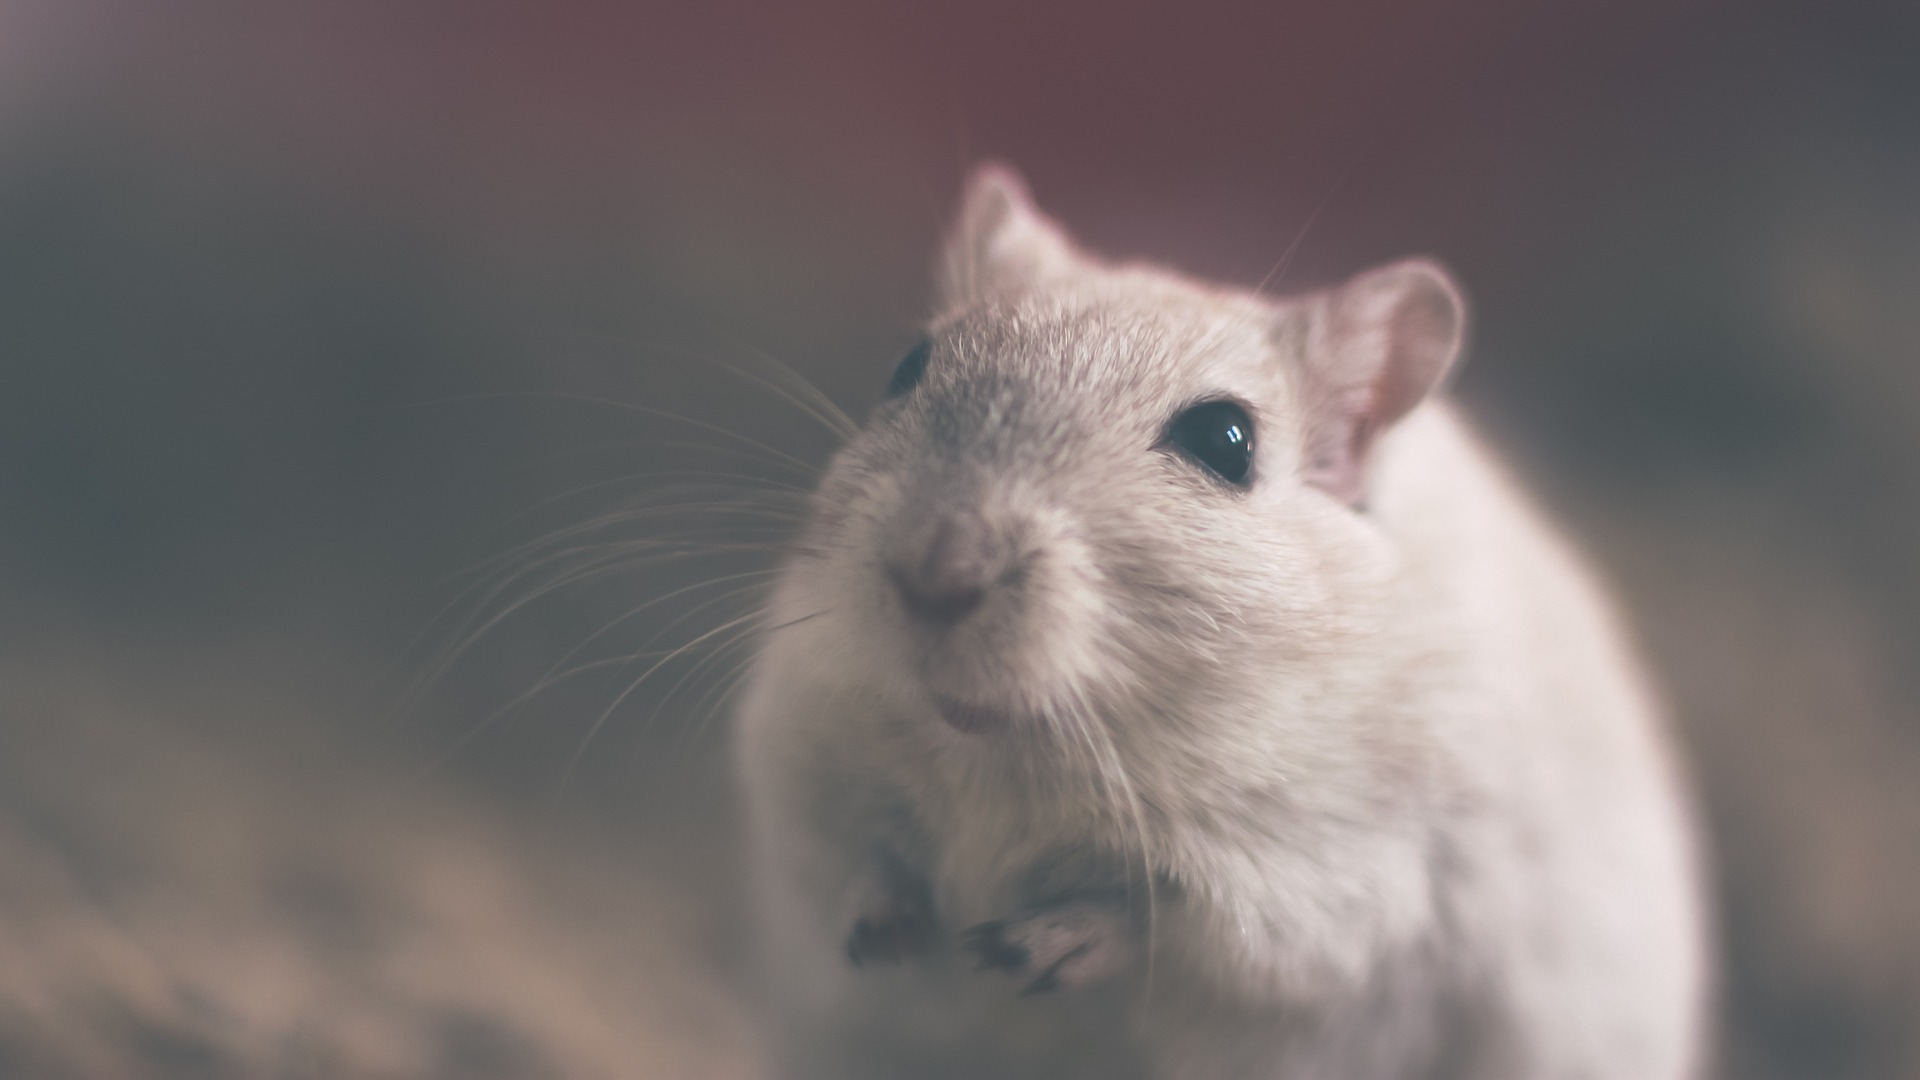 mouse-801843_1920